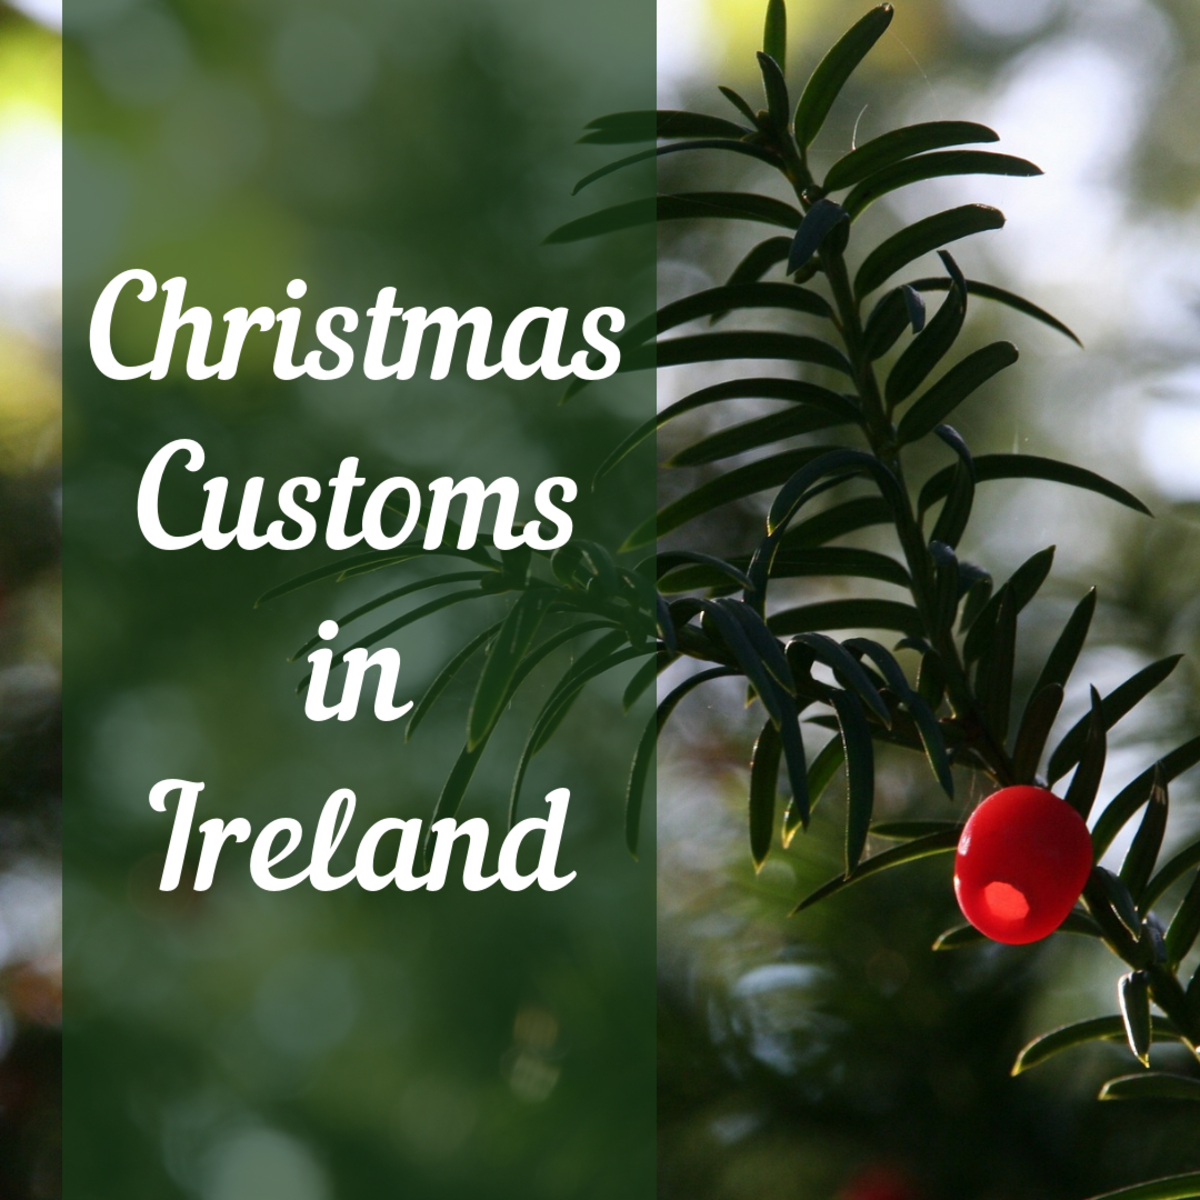 Celtic Christmas Traditions: Candles, Greenery, Blessings and More